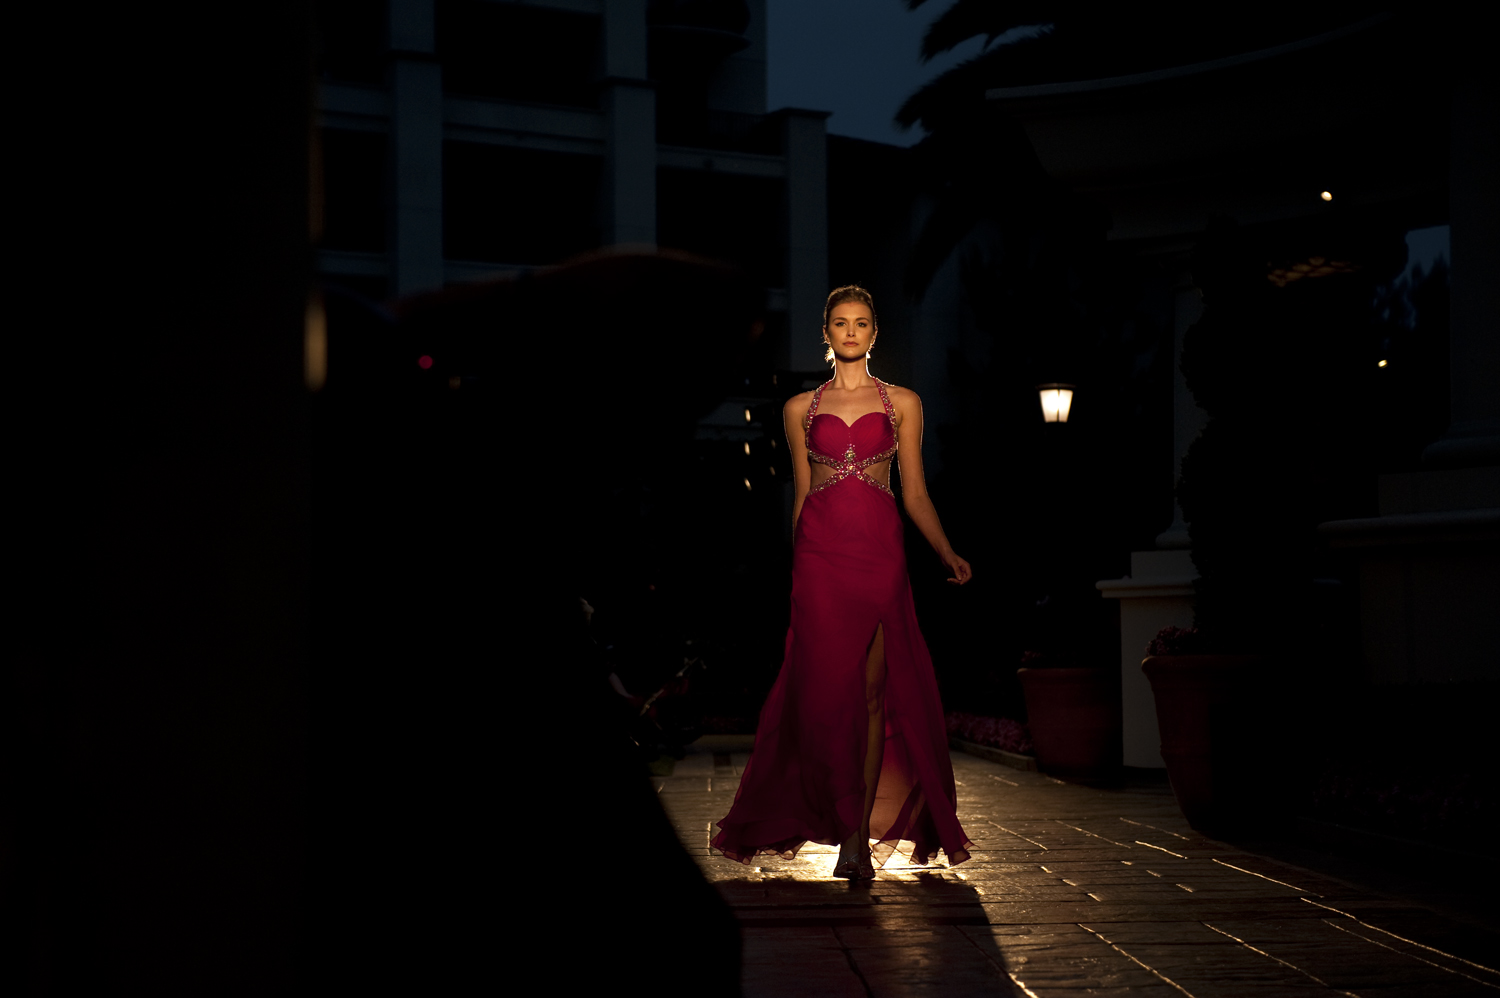 A model finishes her walk on the runway during the Sixth Annual Enzoani Fashion Event held at St. Regis Monarch Beach Resort in Dana Point, California.